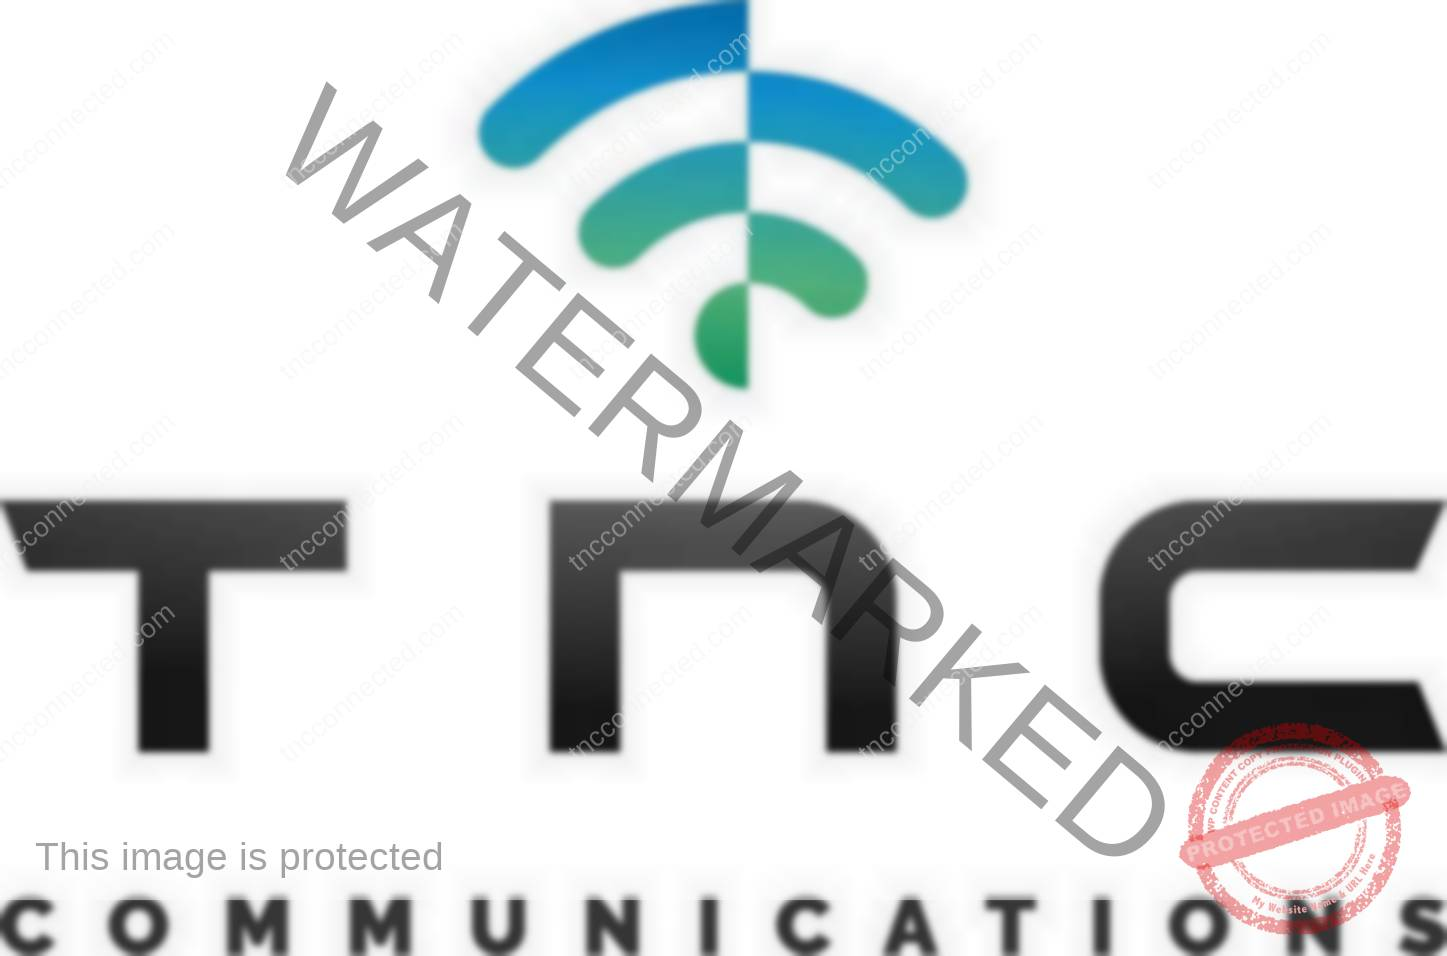 TNC Communications - Your Technology Solutions Provider!